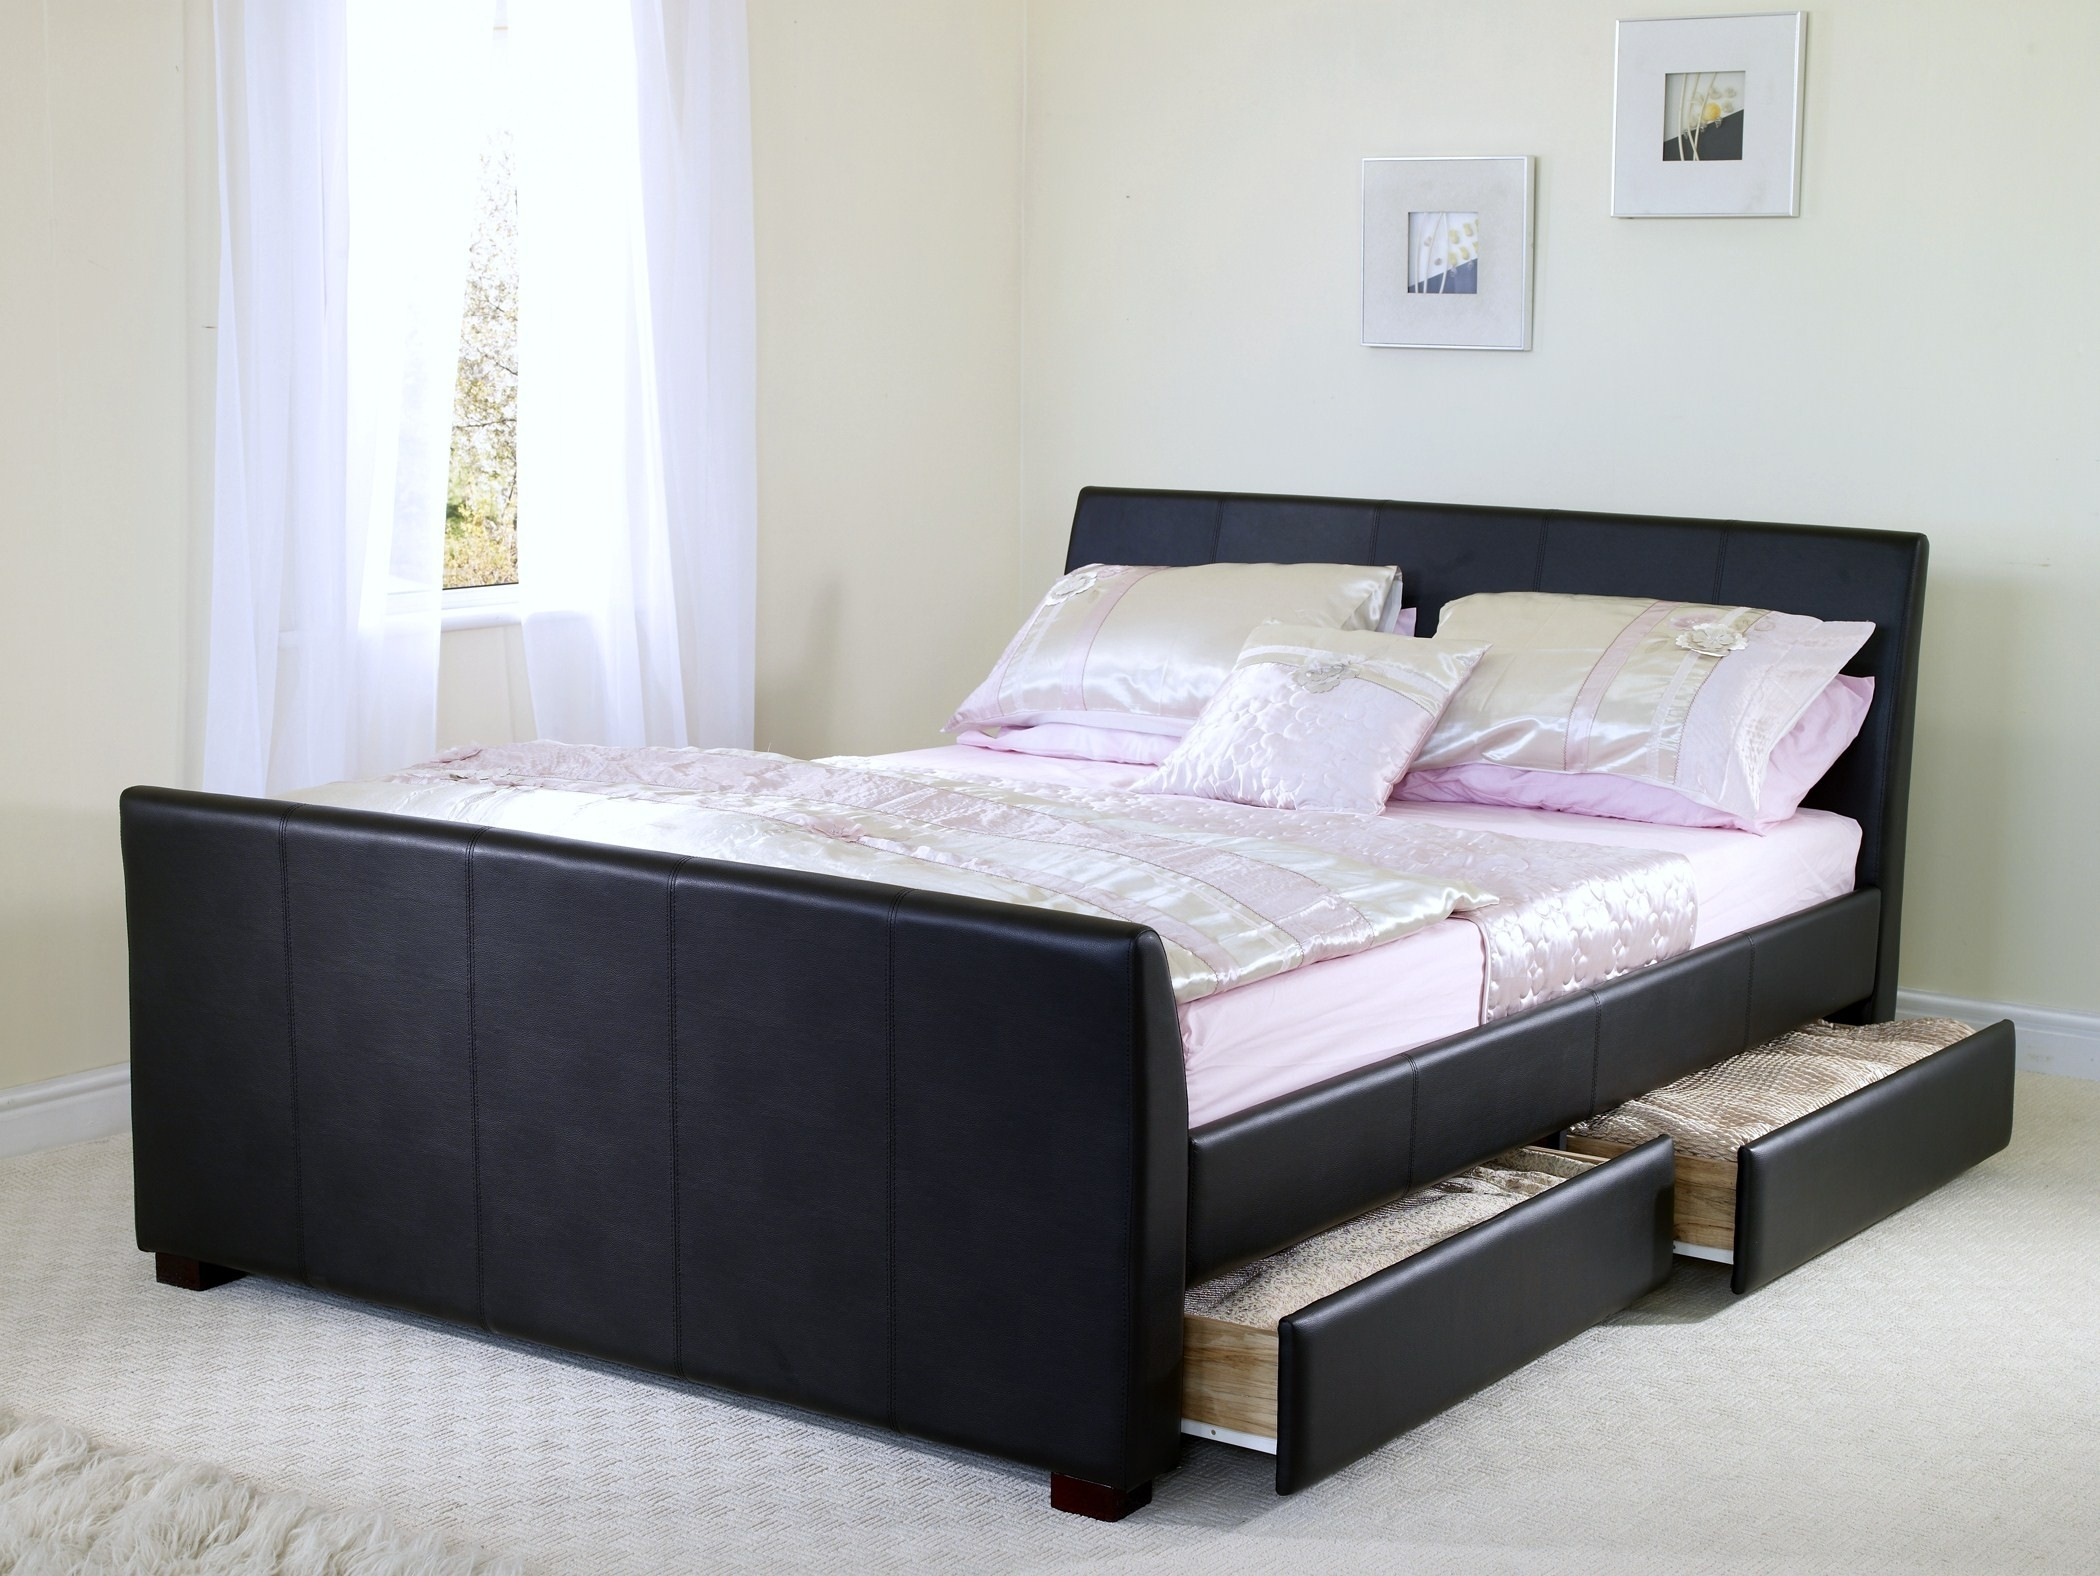 Queen Size Bed Frame With Under Bed Storage